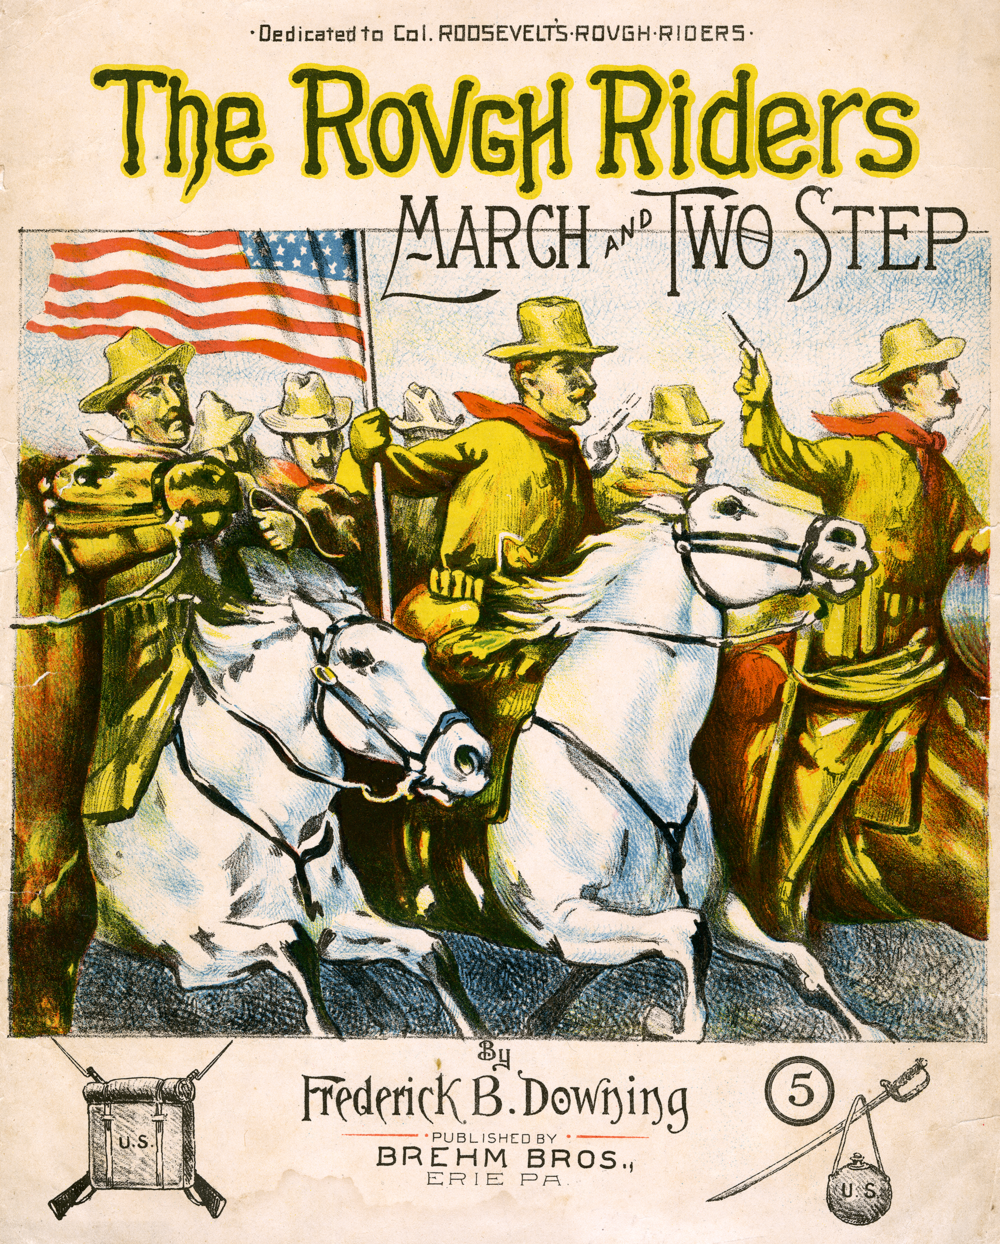 Sheet music from the Gregory A. Wynn Theodore Roosevelt Collection.